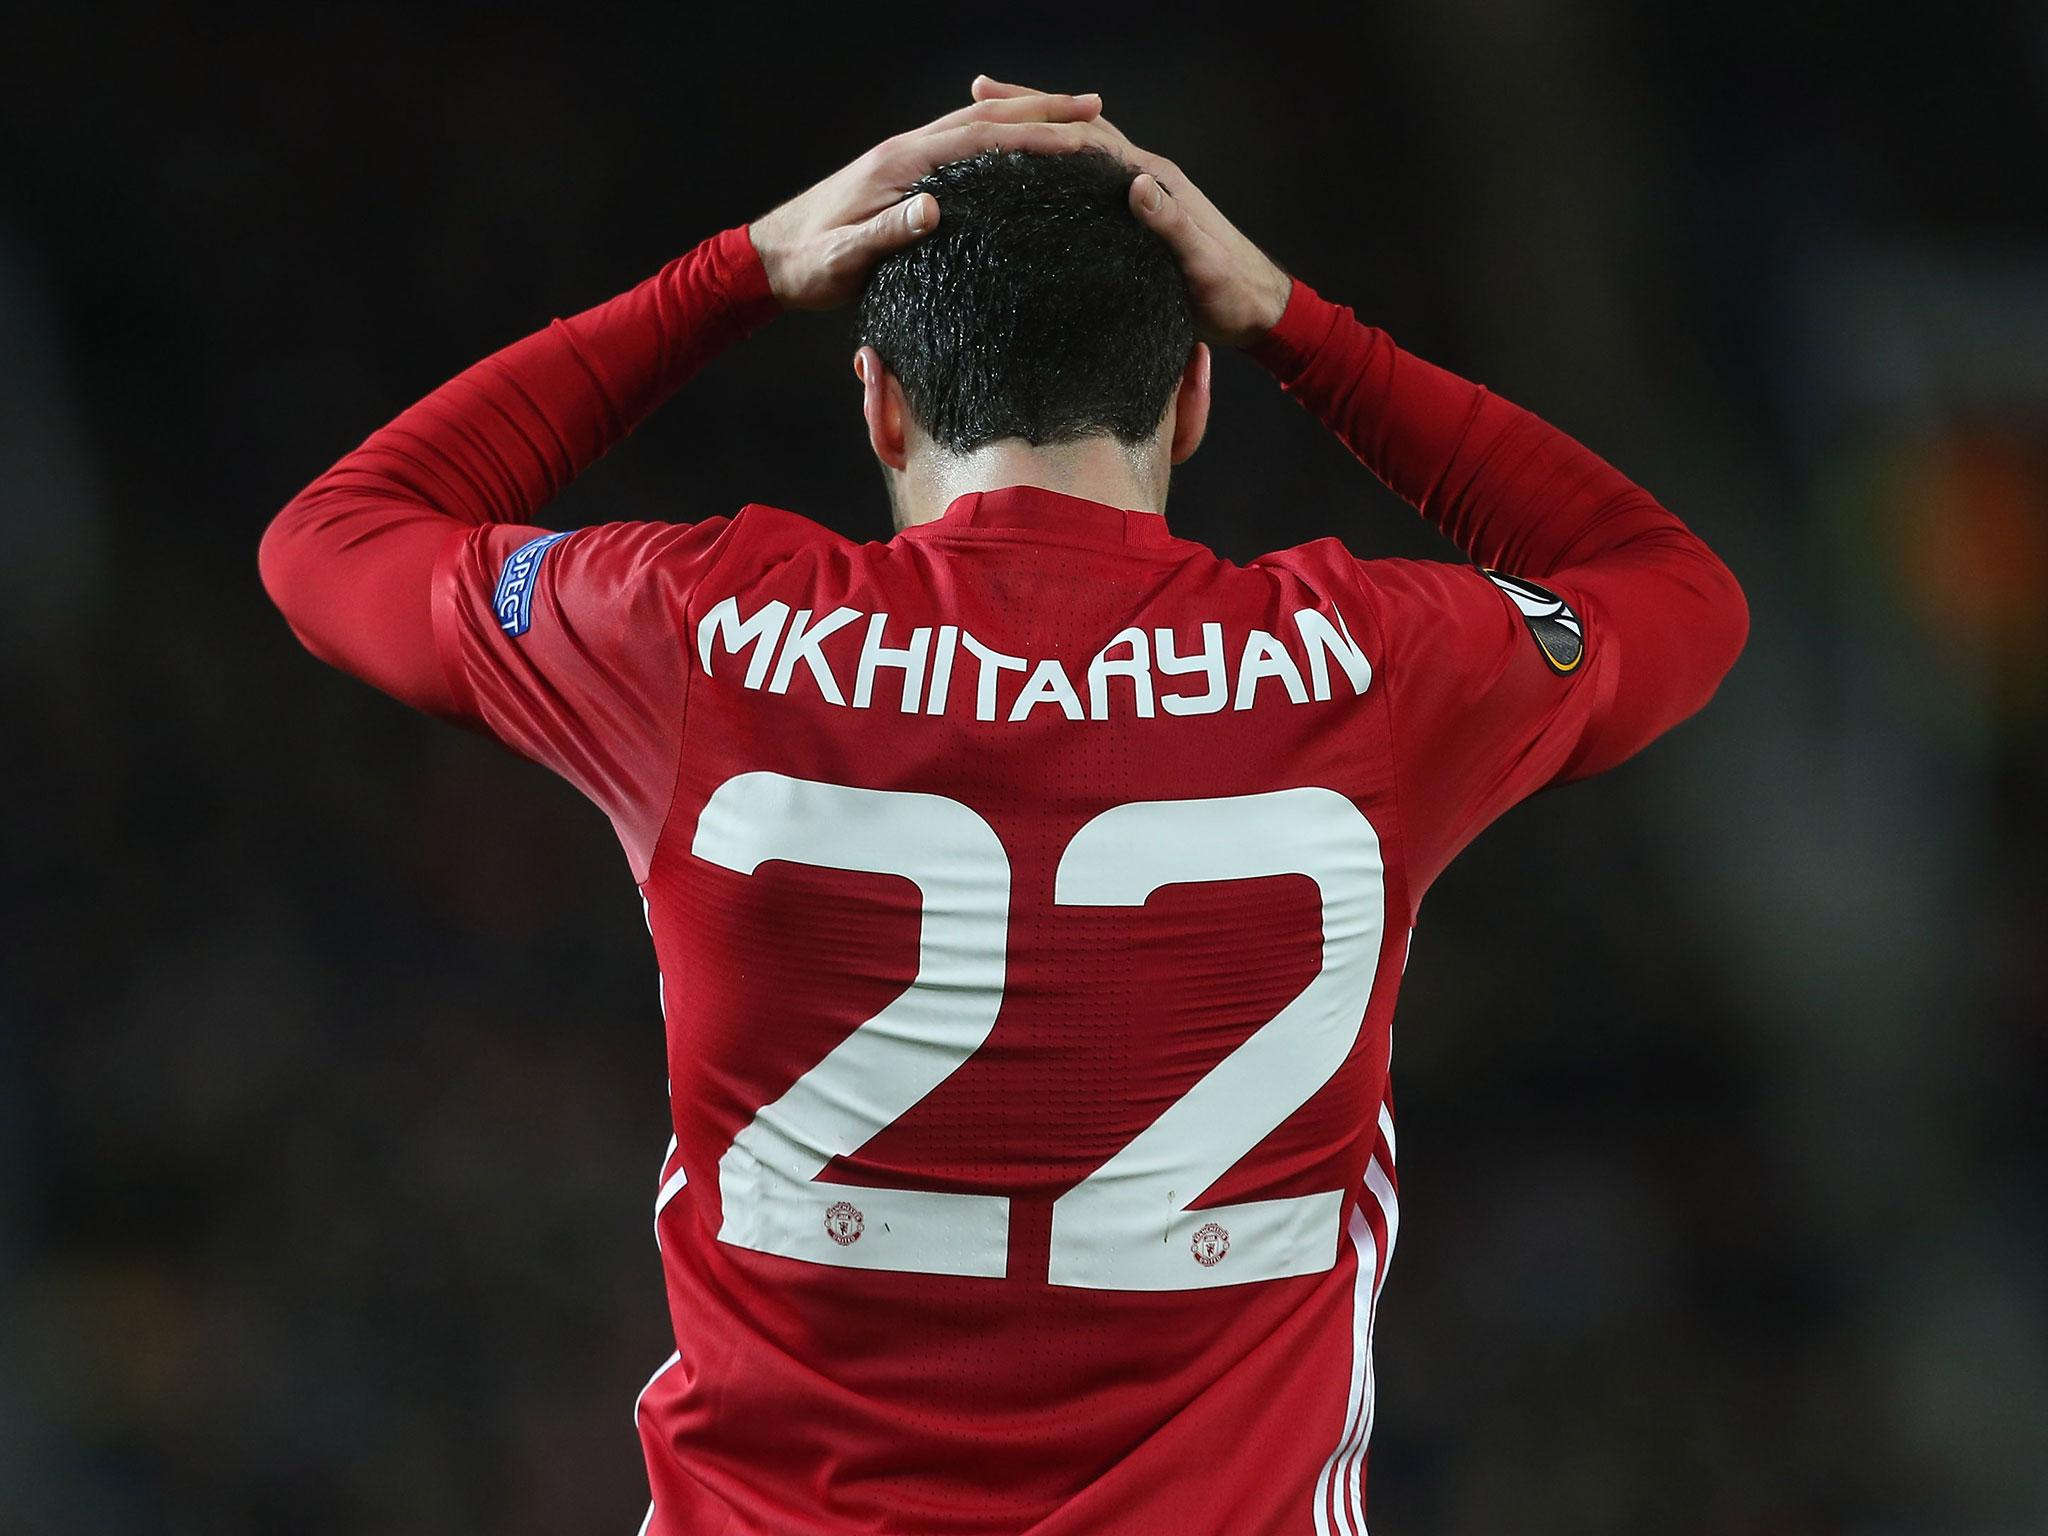 Mkhitaryan sends very honest message to fans after Stoke game